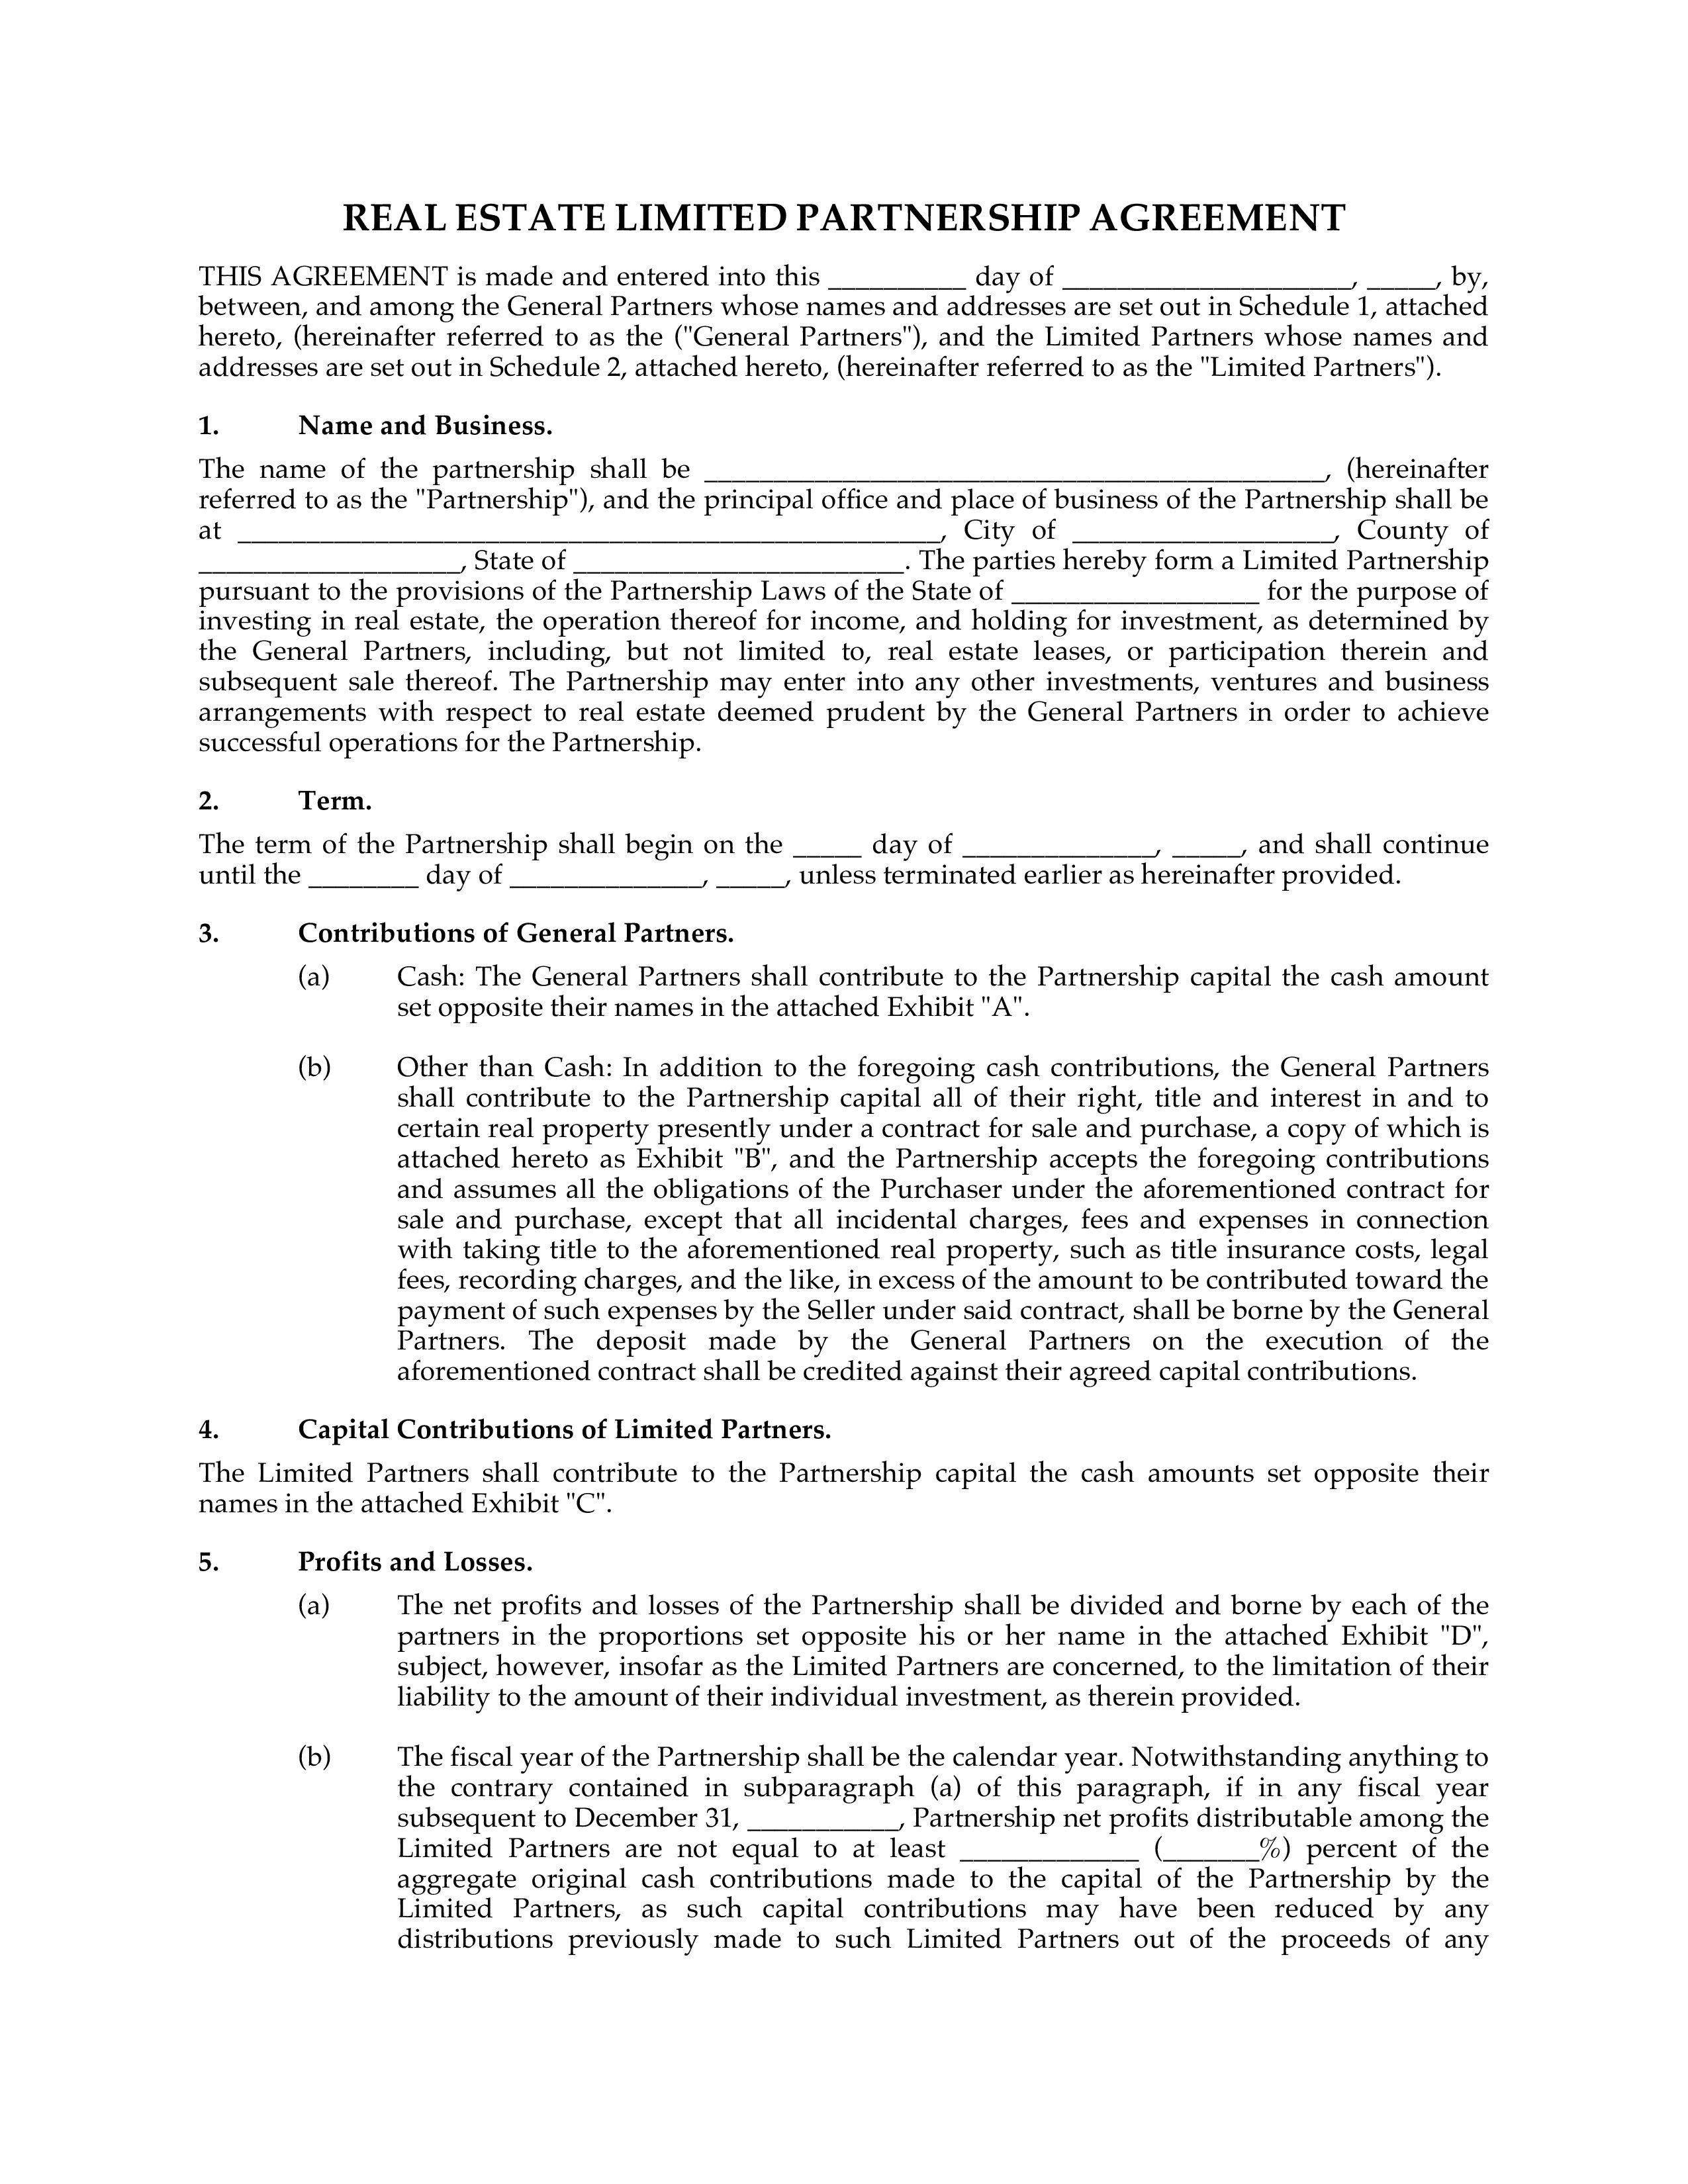 002 Unbelievable Real Estate Partnership Agreement Template Highest Clarity  Team InvestmentFull